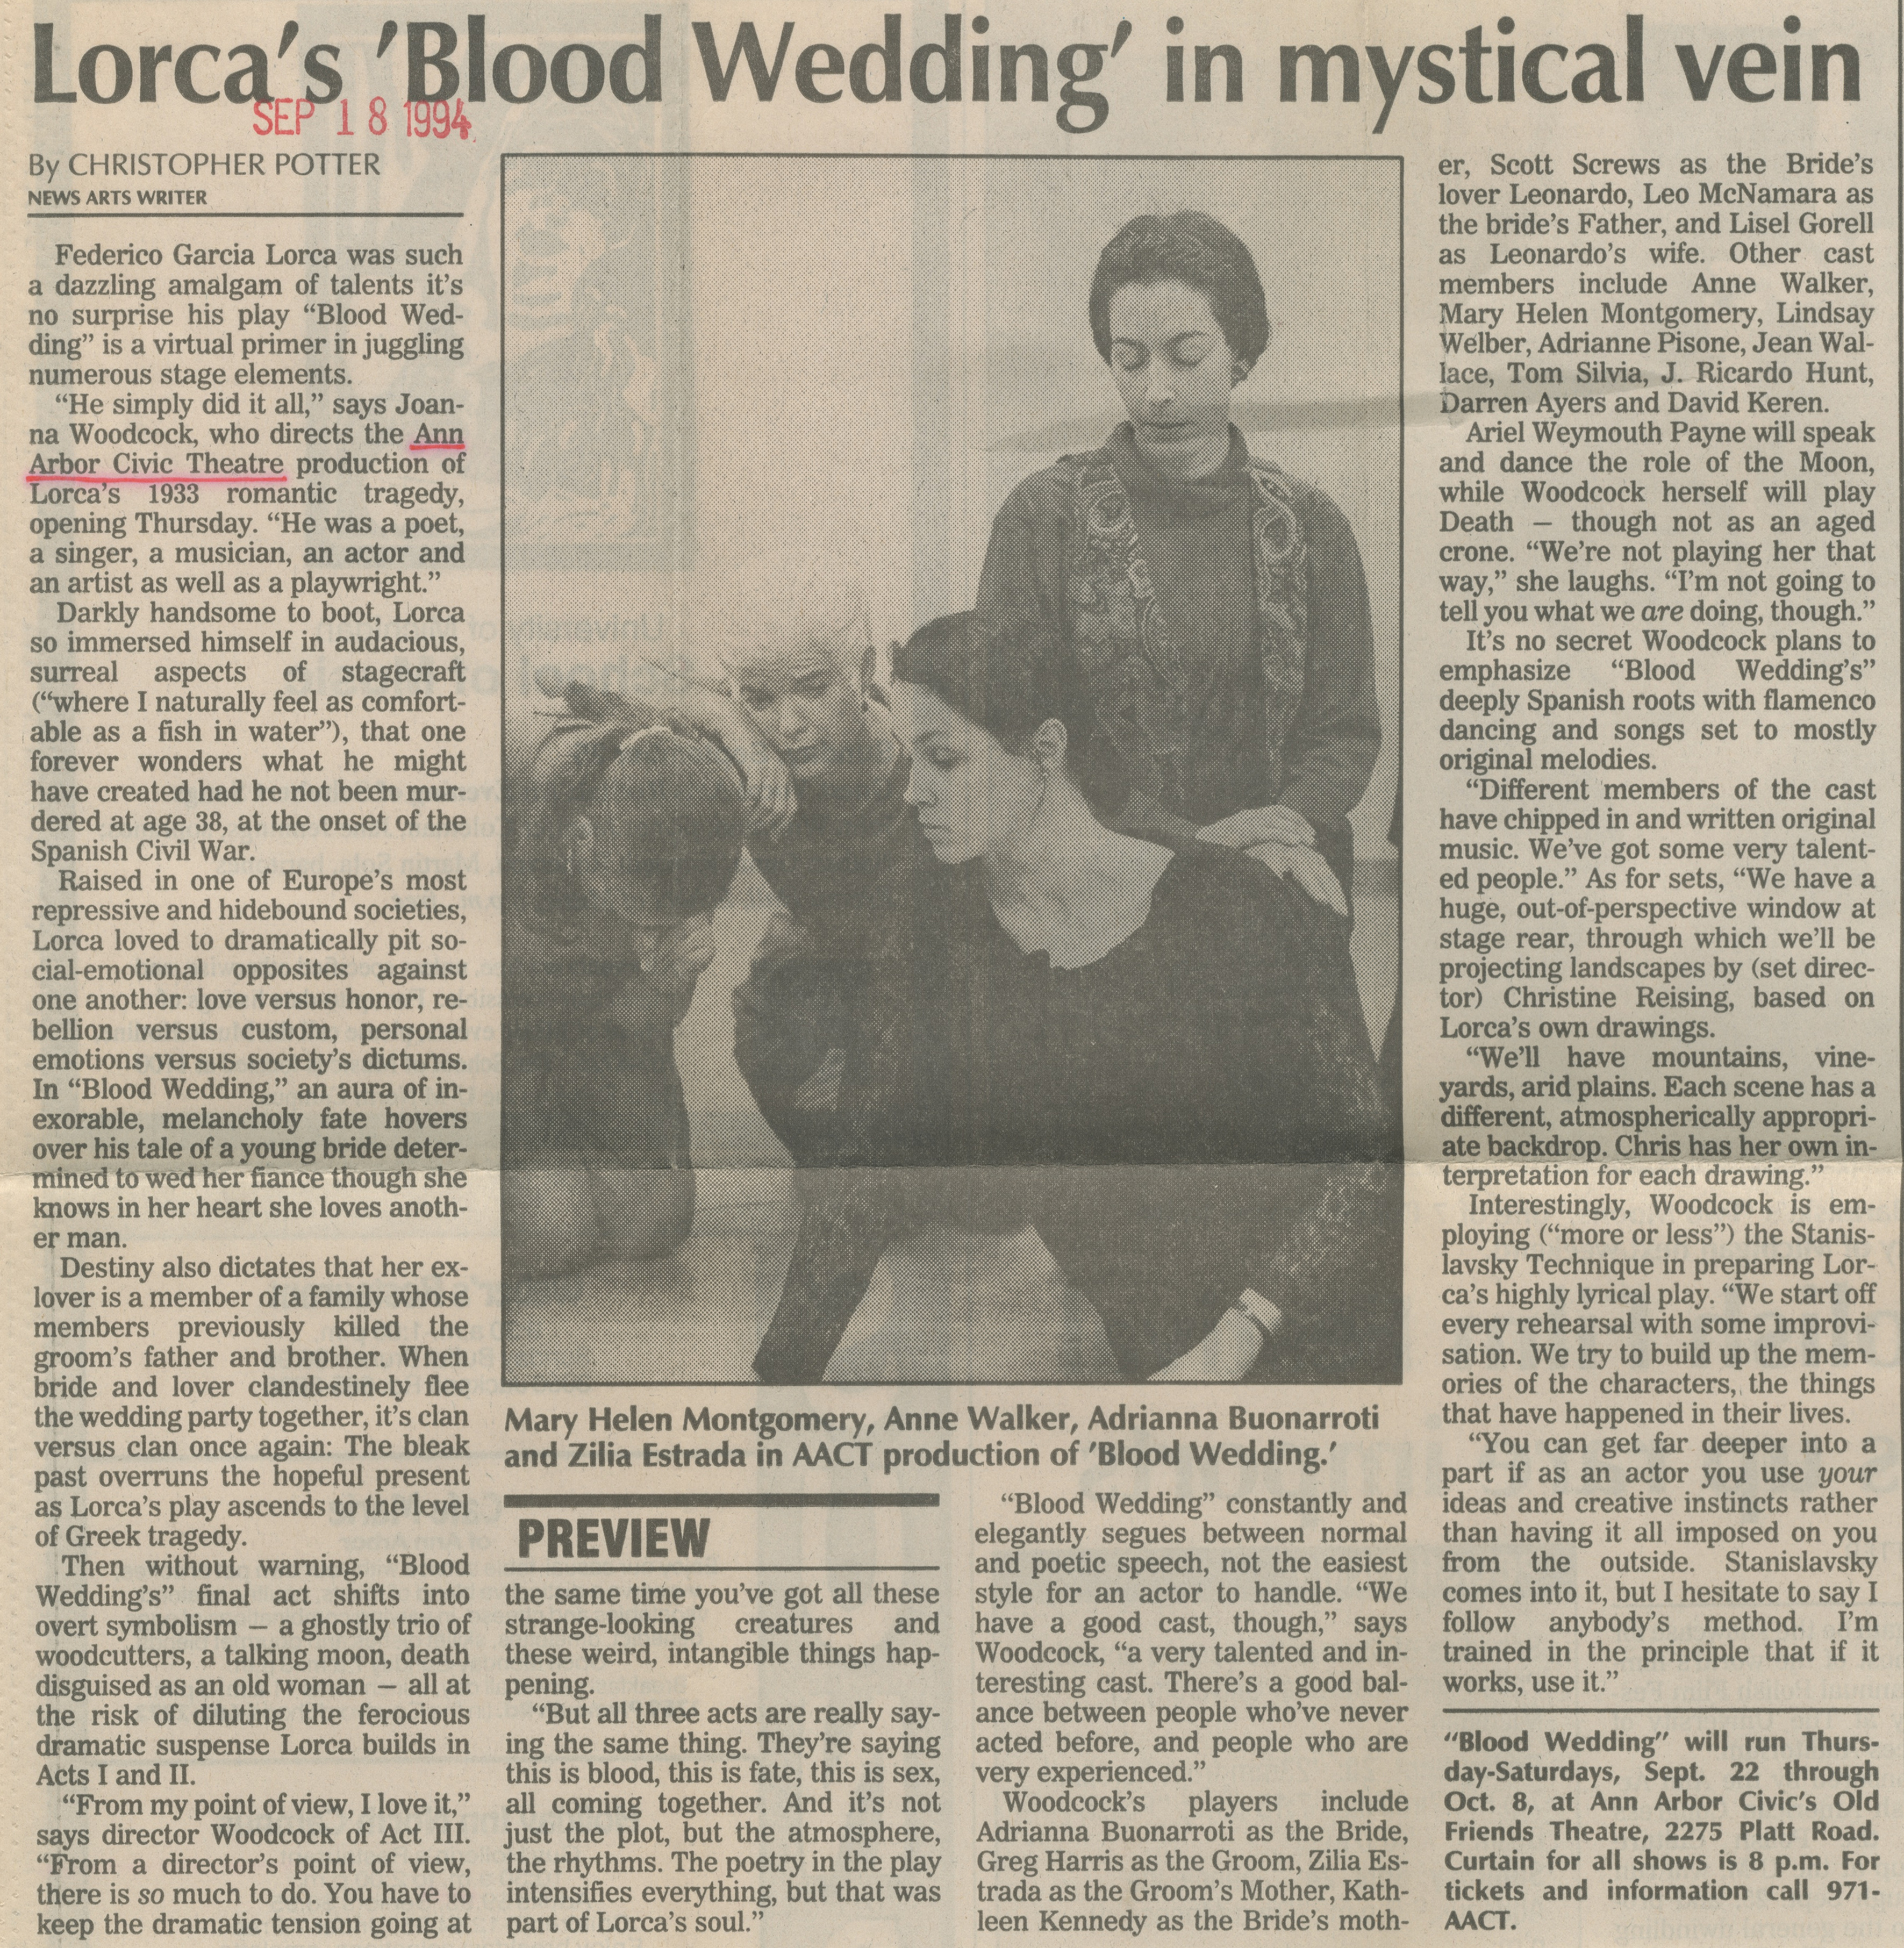 Lorca's 'Blood Wedding' In Mystical Vein image